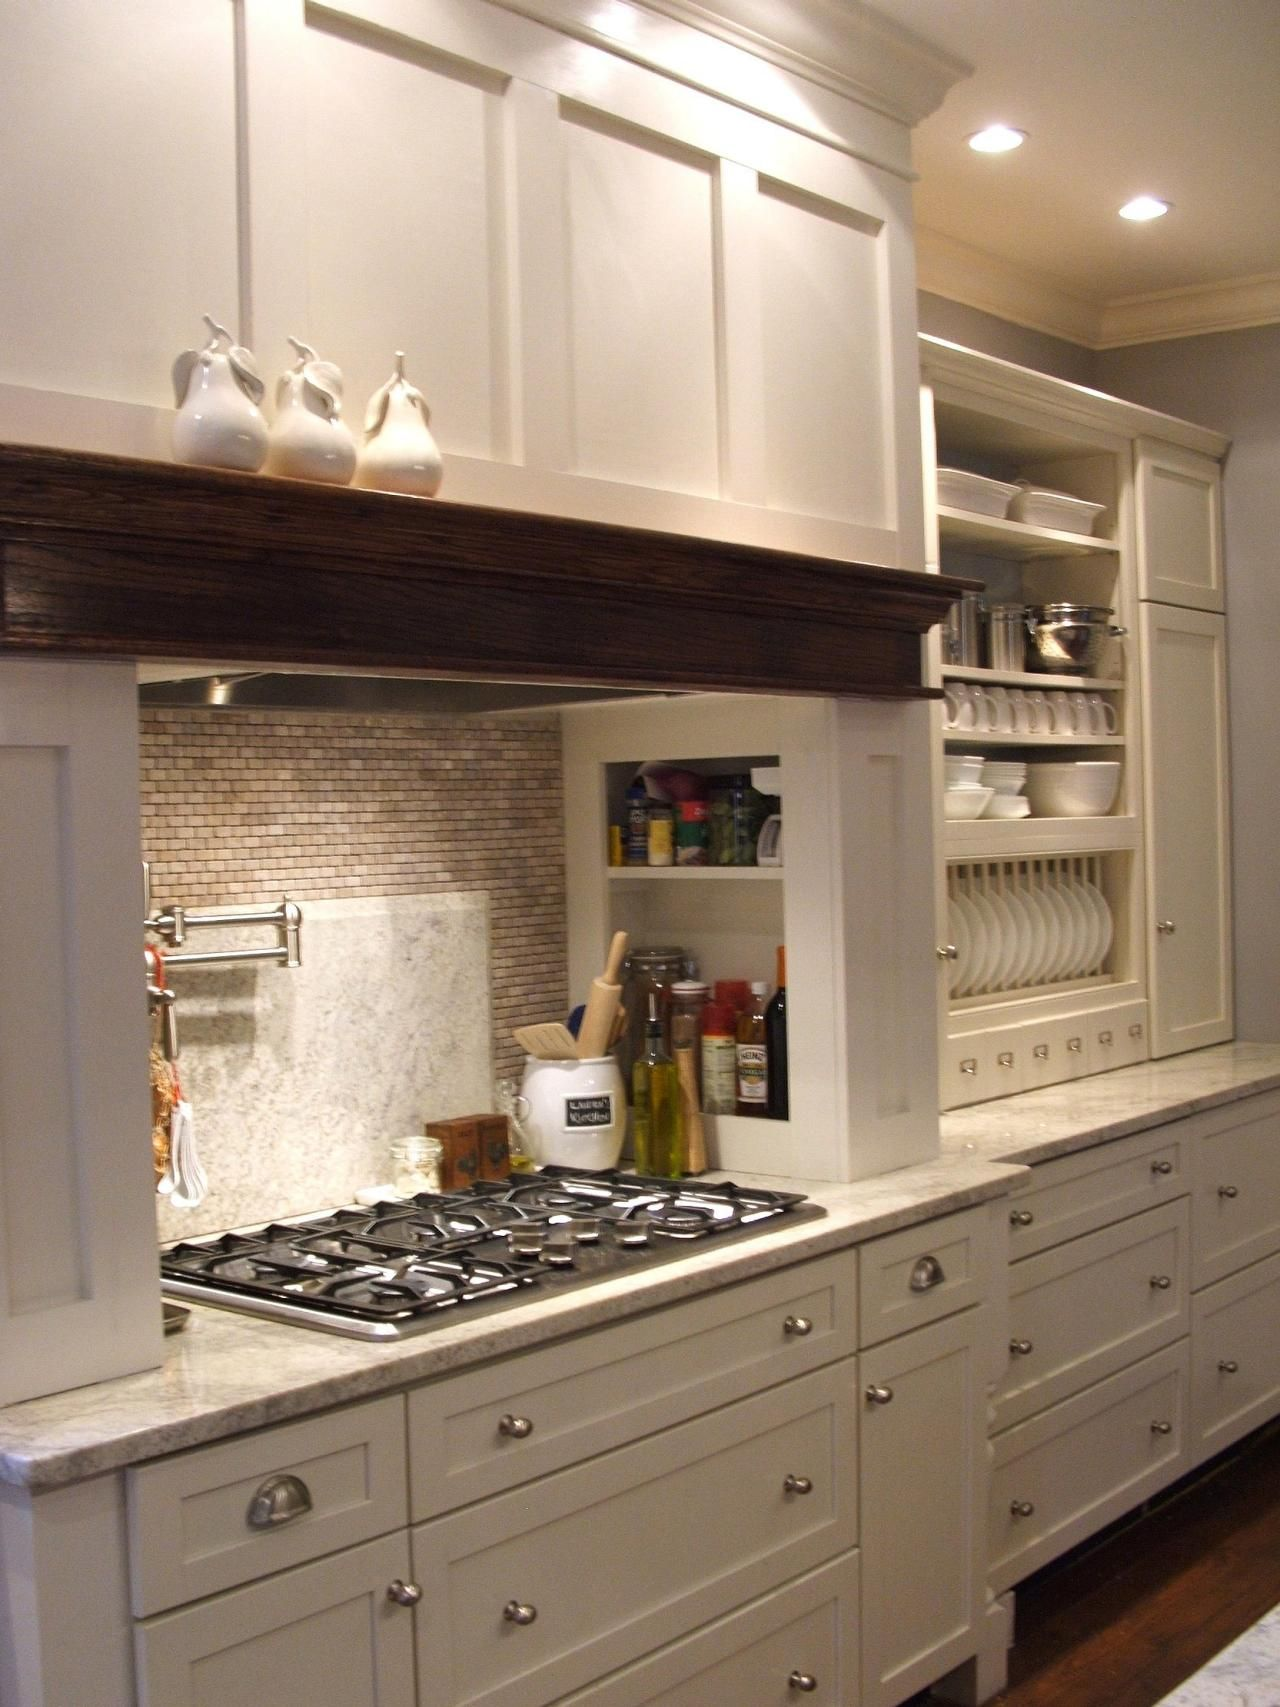 kitchens on a budget our 14 favorites from hgtv fans kitchen ideas design with cabinets on kitchen ideas on a budget id=35233